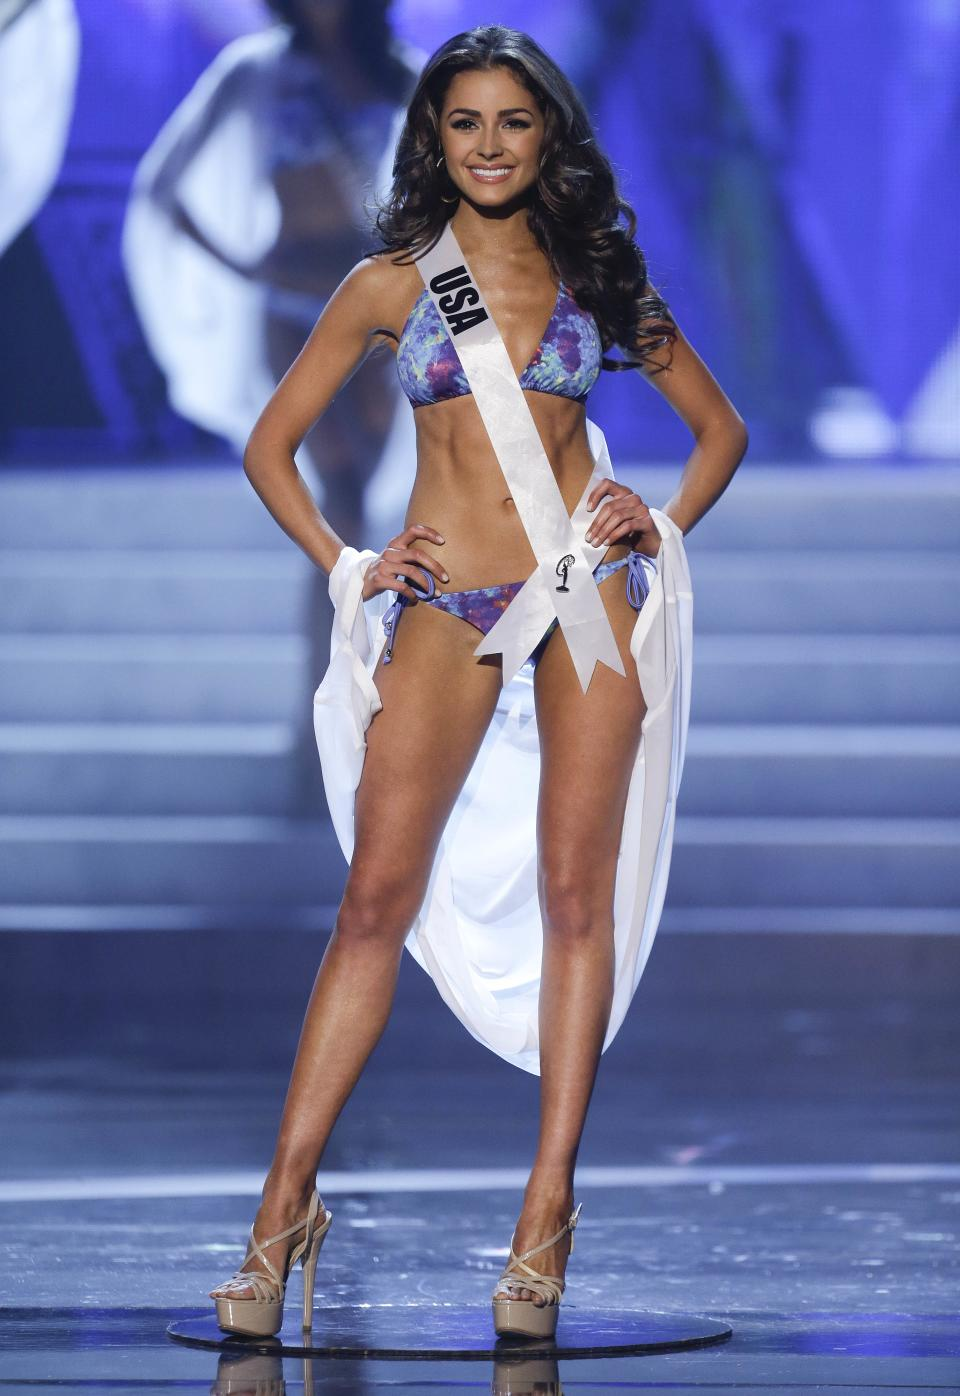 Miss USA Olivia Culpo takes center stage as she is announced as one of the five finalists during the Miss Universe pageant, Wednesday, Dec. 19, 2012, in Las Vegas. Culpo was crowned as Miss Universe. (AP Photo/Julie Jacobson)